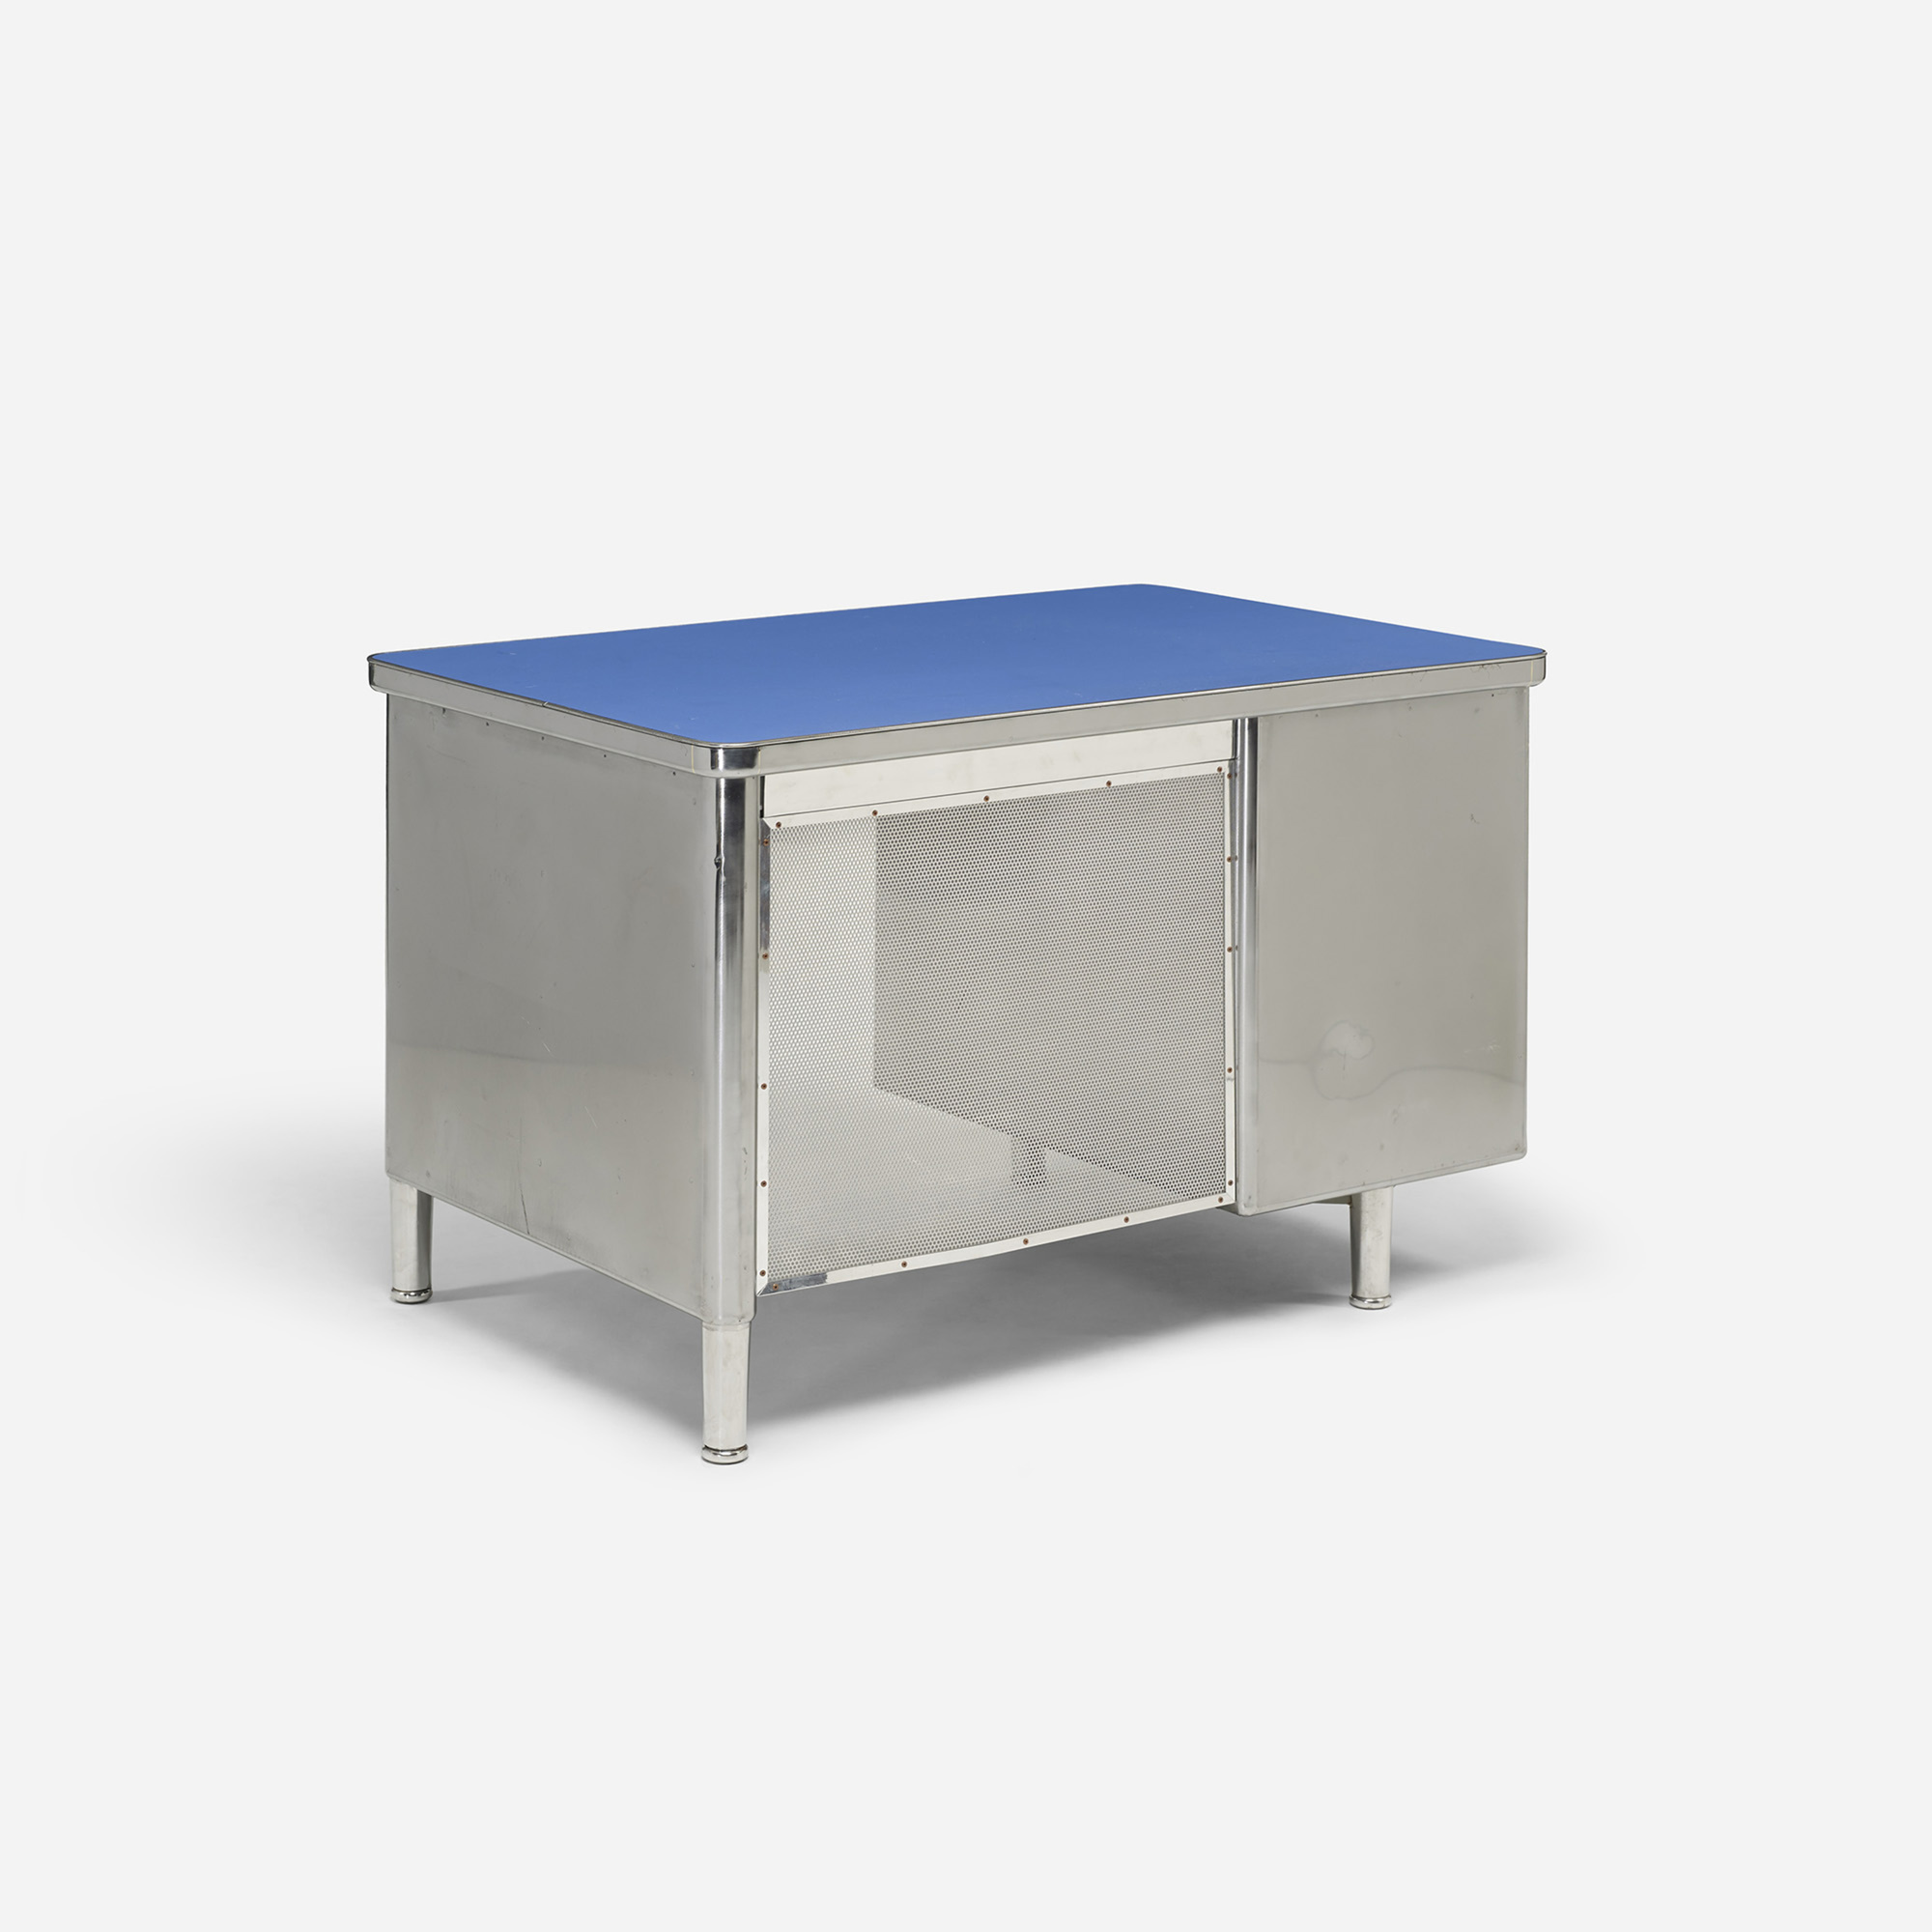 741: Steelcase / desk (2 of 4)